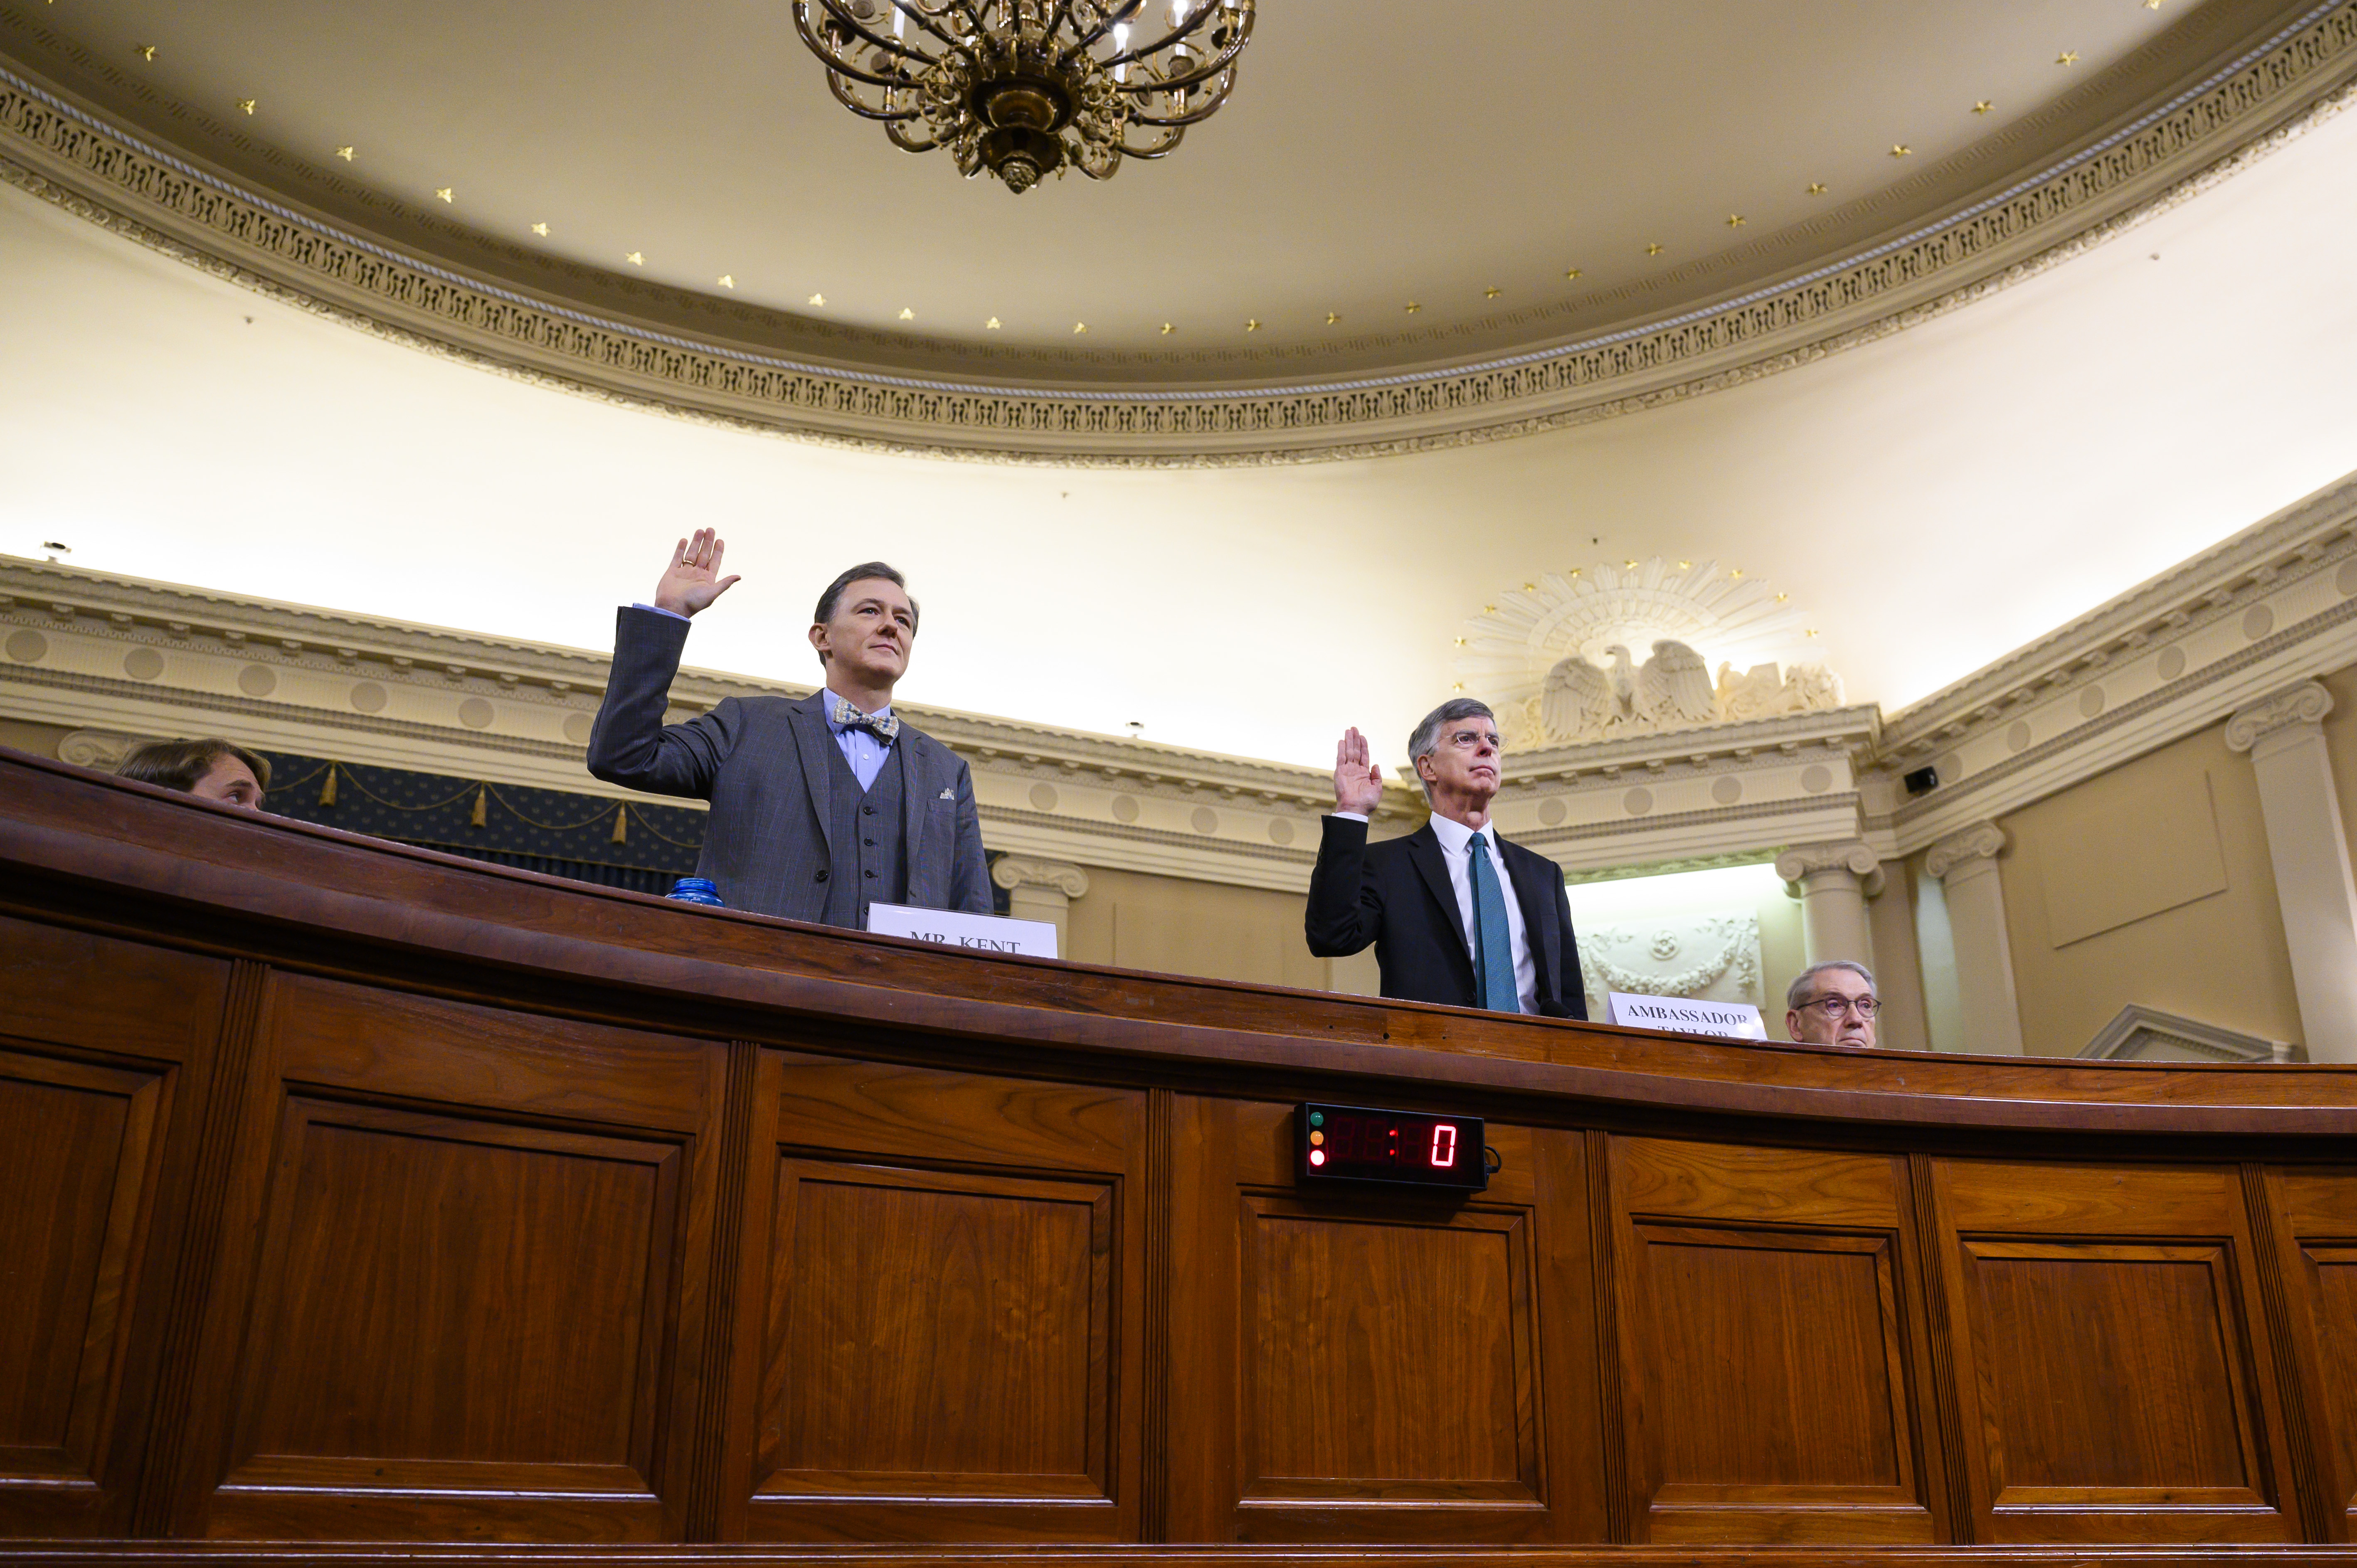 UNITED STATES - NOVEMBER 13: William Taylor, the senior U.S. diplomat in Ukraine, and George Kent, deputy assistant secretary for European and Eurasian Affairs, are sworn in to the House Intelligence Committee hearing on the impeachment inquiry of President Trump in Longworth Building on Wednesday, November 13, 2019. (Photo By Tom Williams/CQ Roll Call)